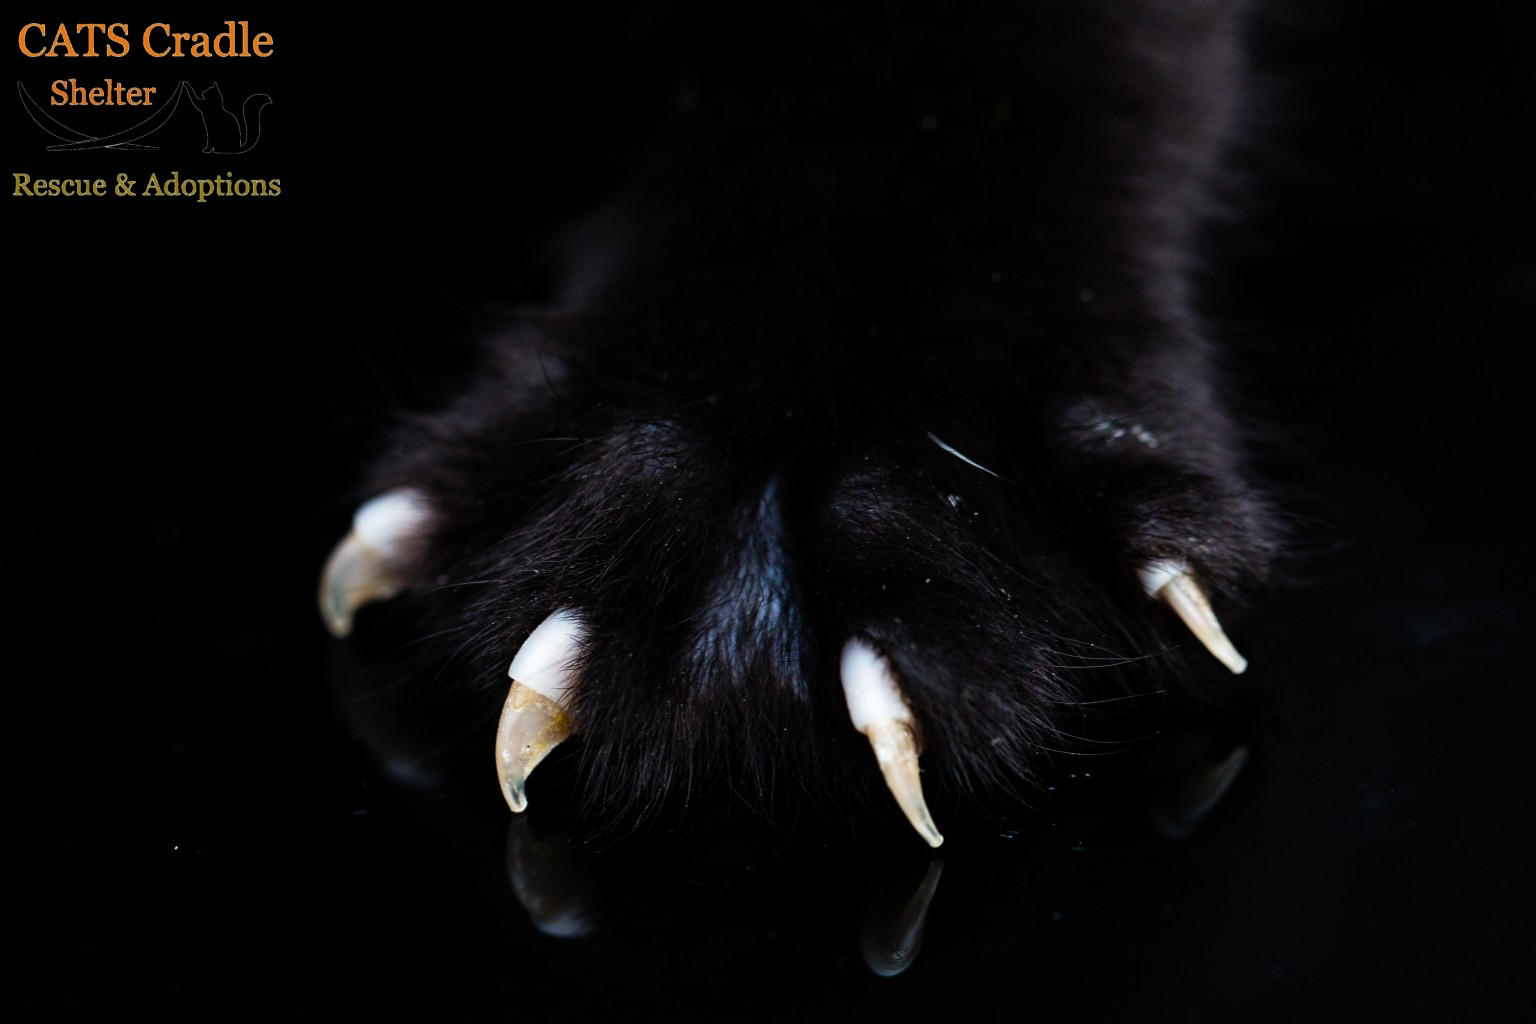 Please don't declaw